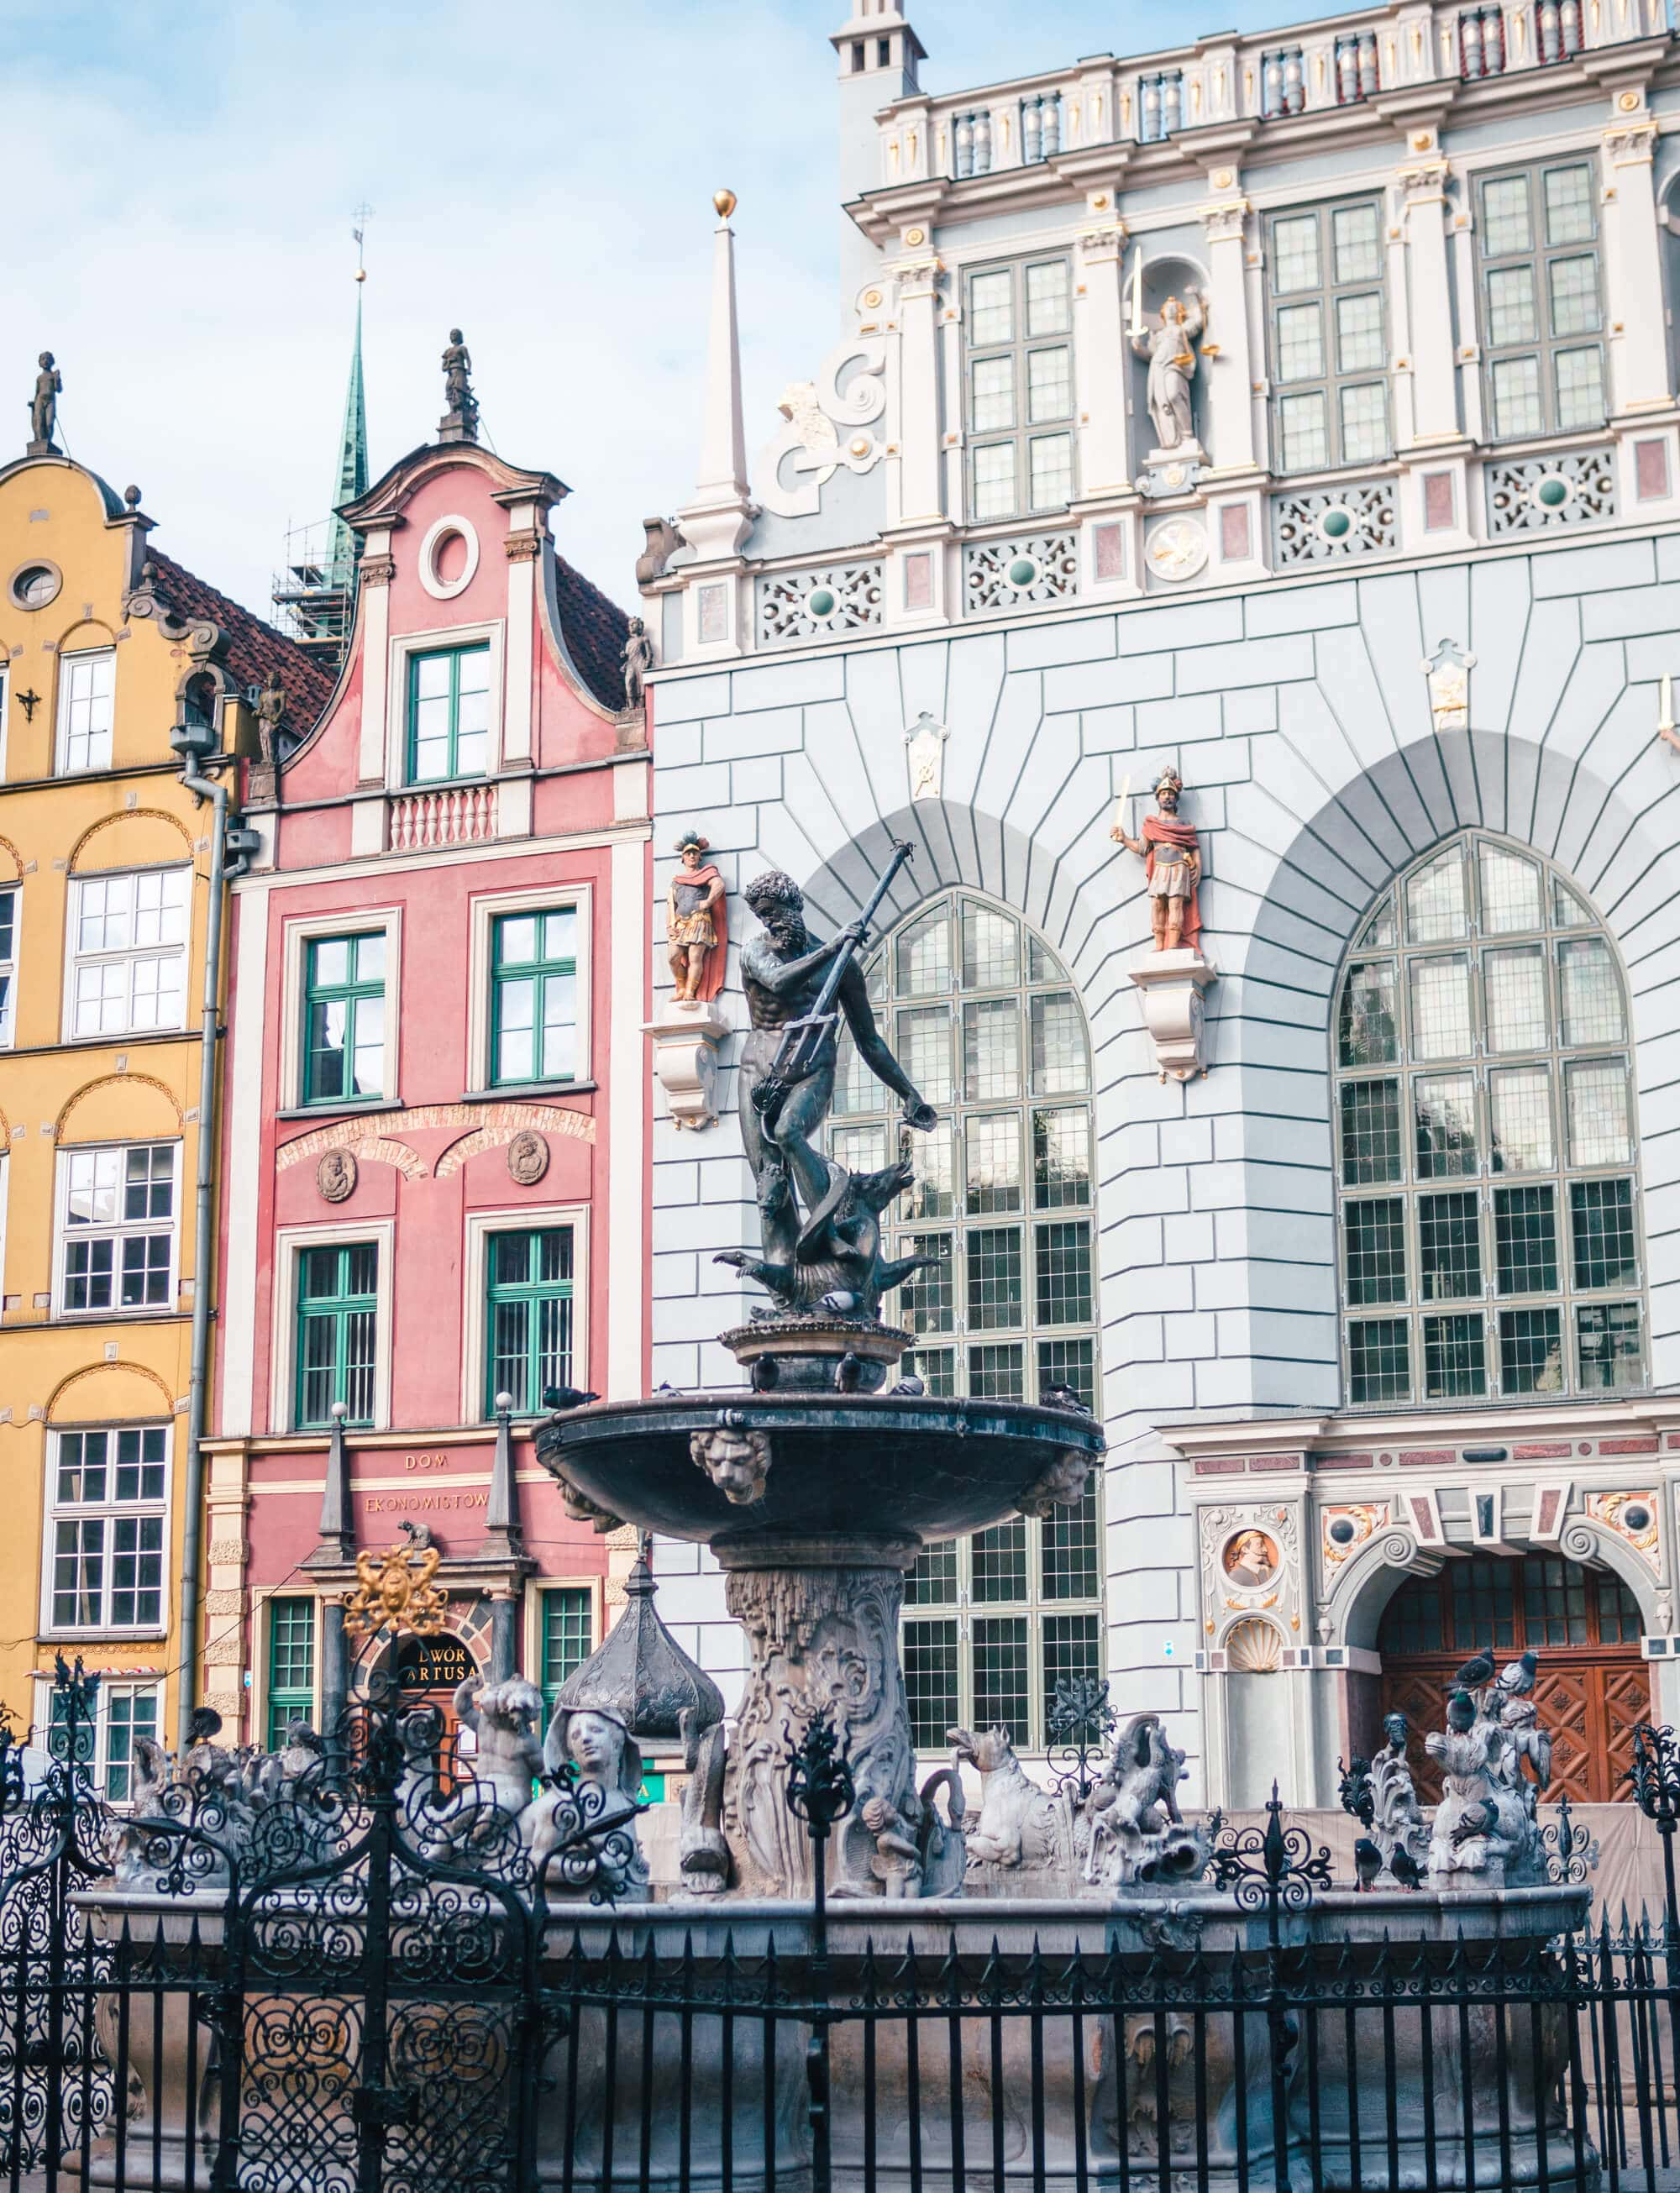 2 days in Gdansk, Poland - Neptune's Fountain at Długi Targ